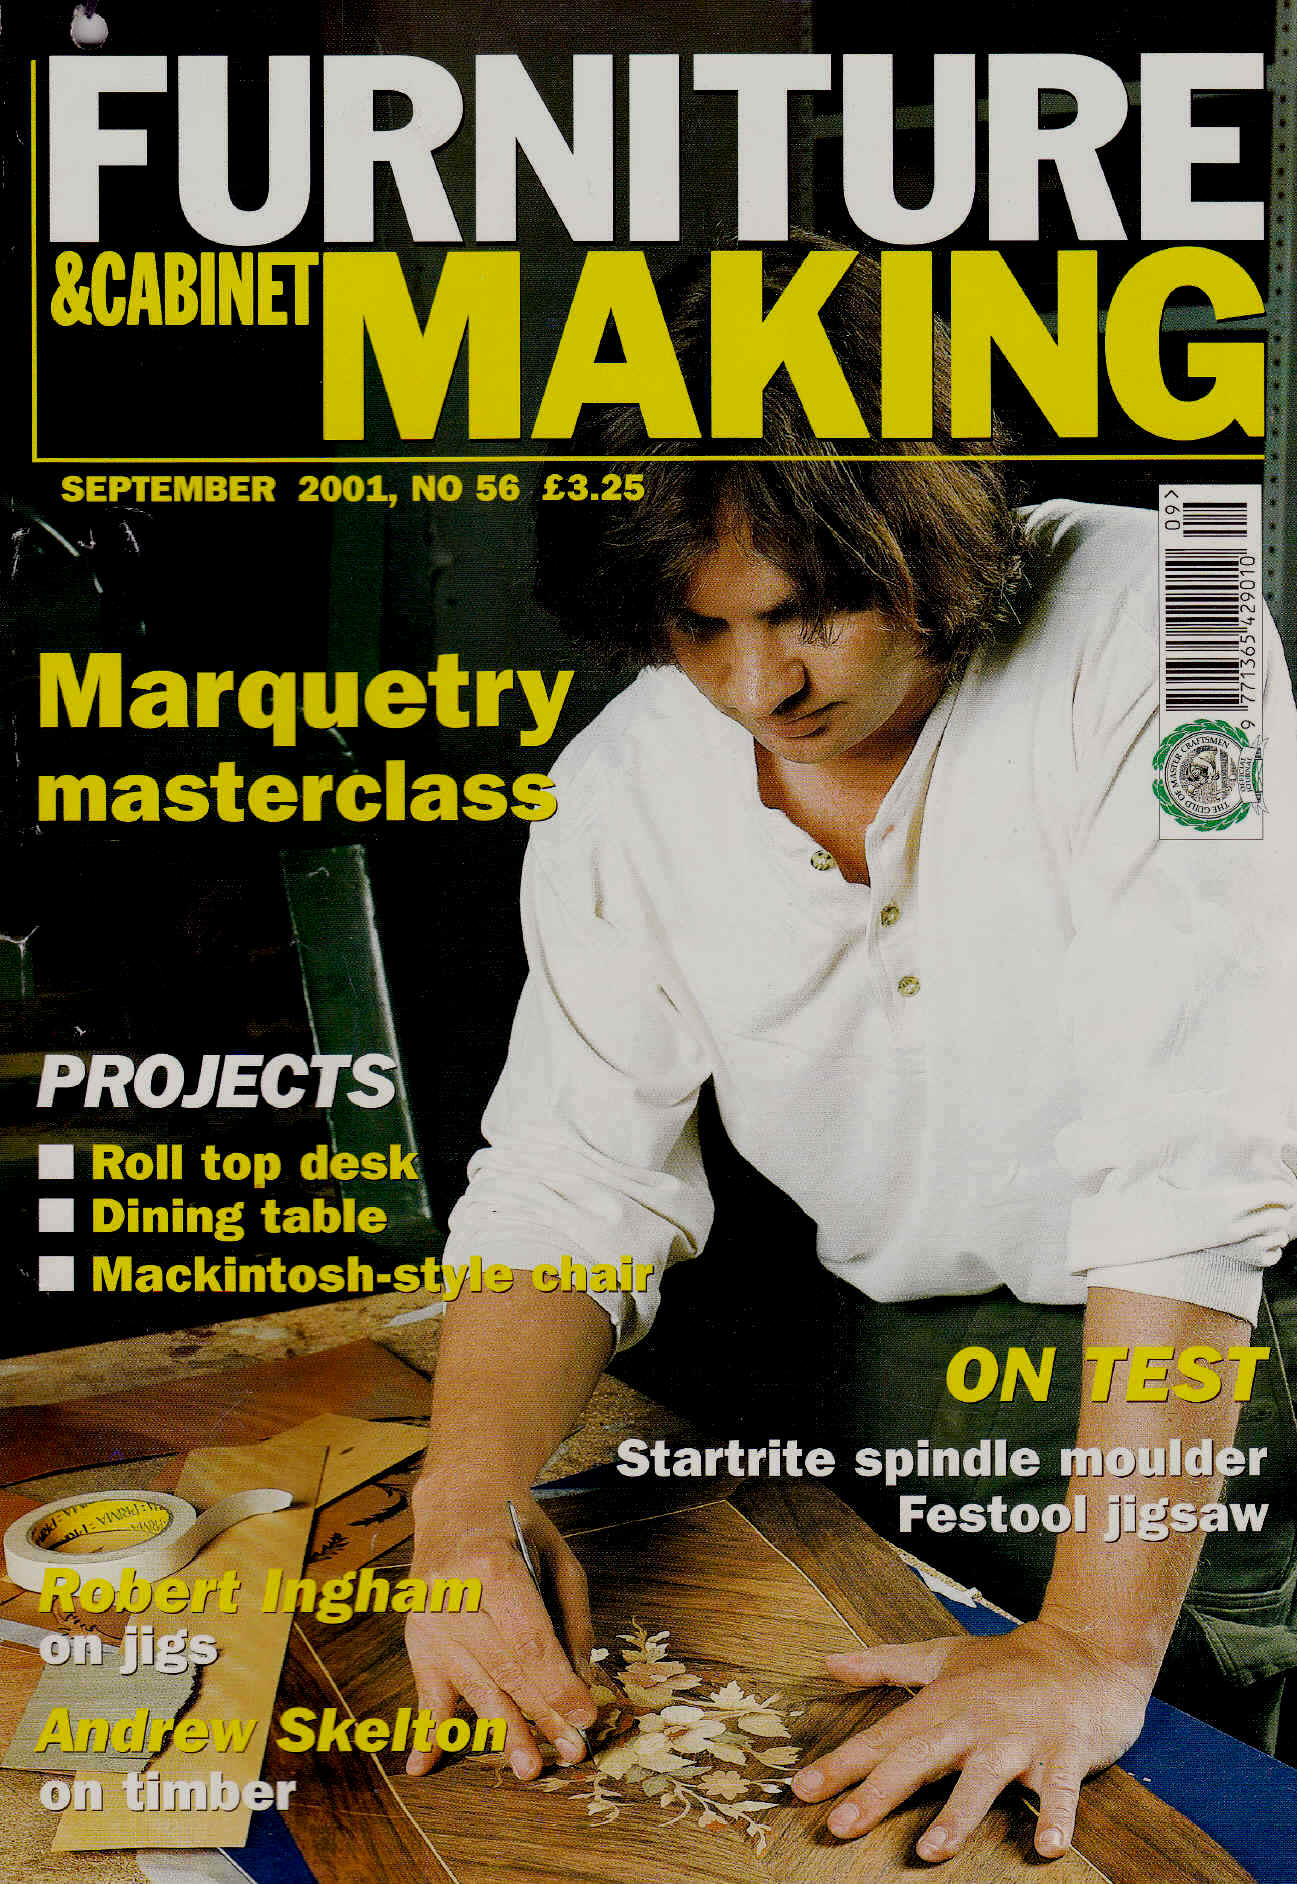 Joe features on the front cover of Furniture Making